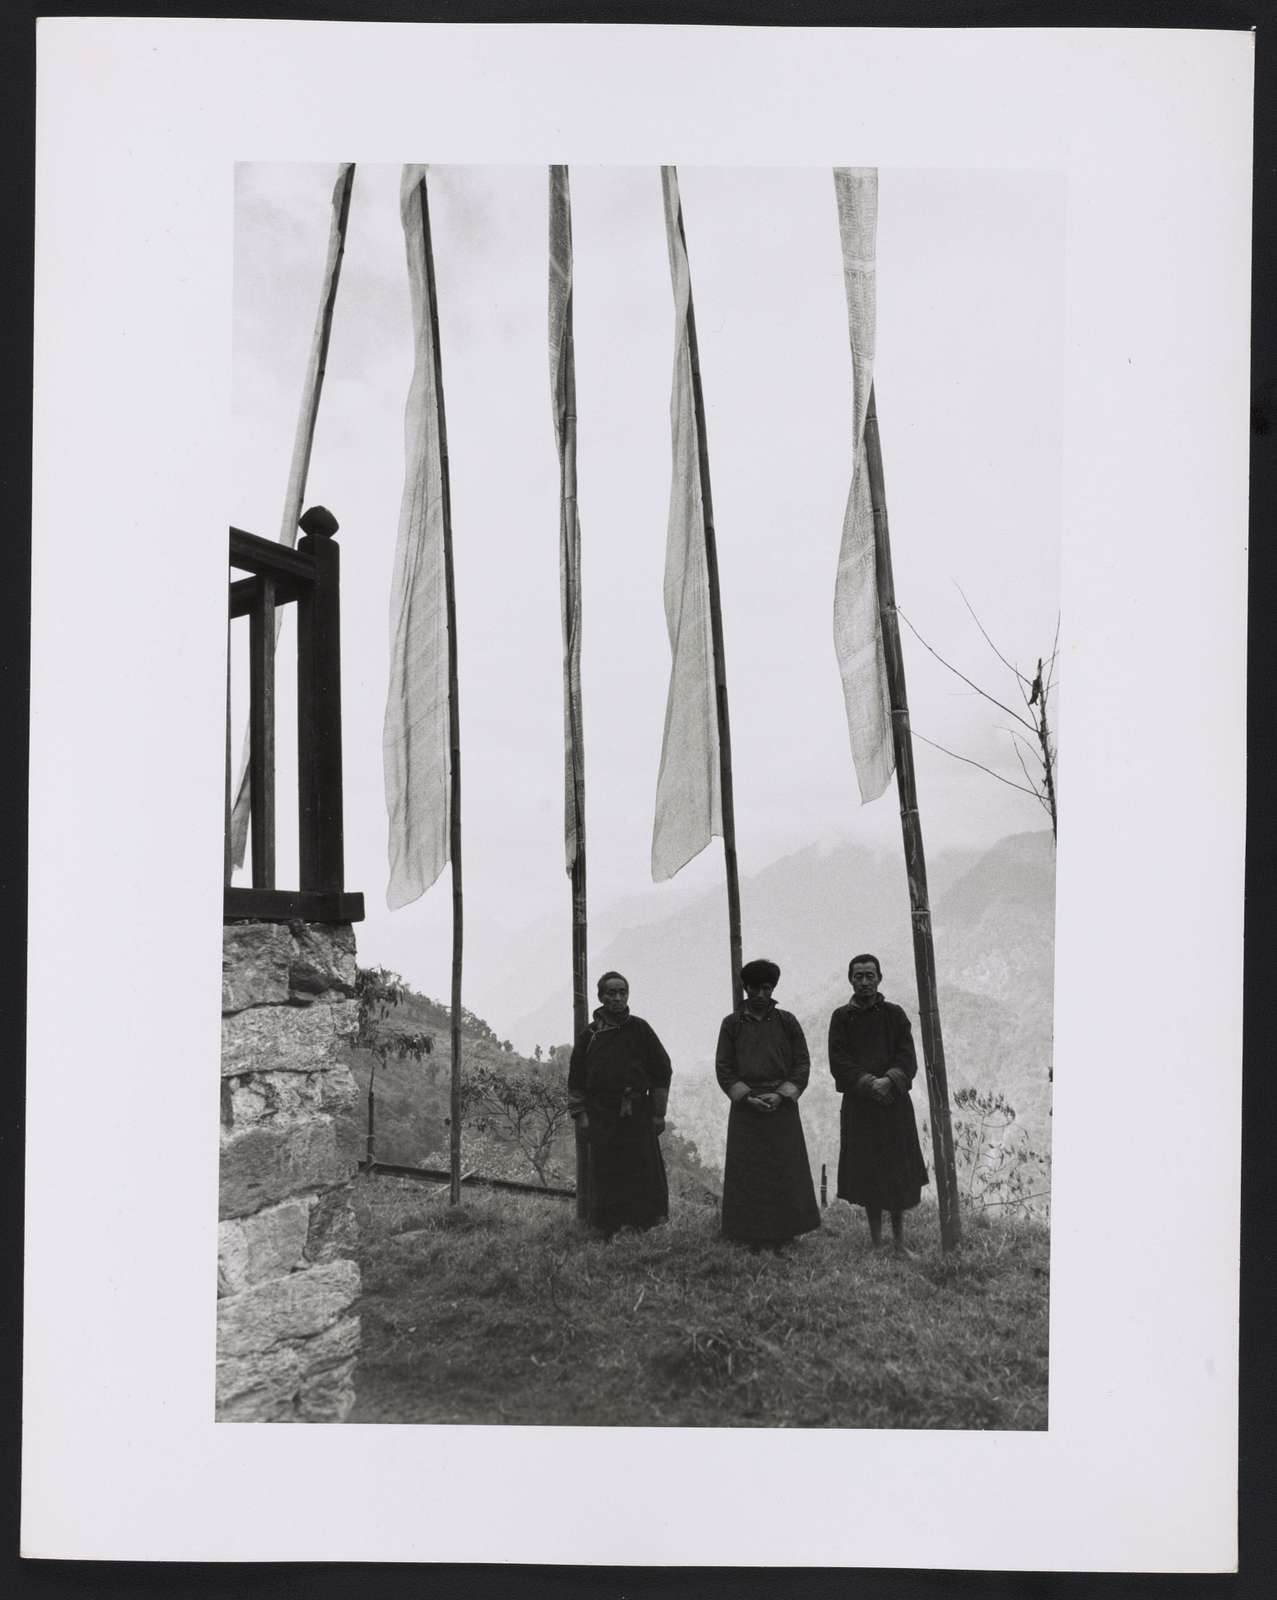 Lamas & prayer flags. Wind blows past the prayers and blesses the land as the wind passes